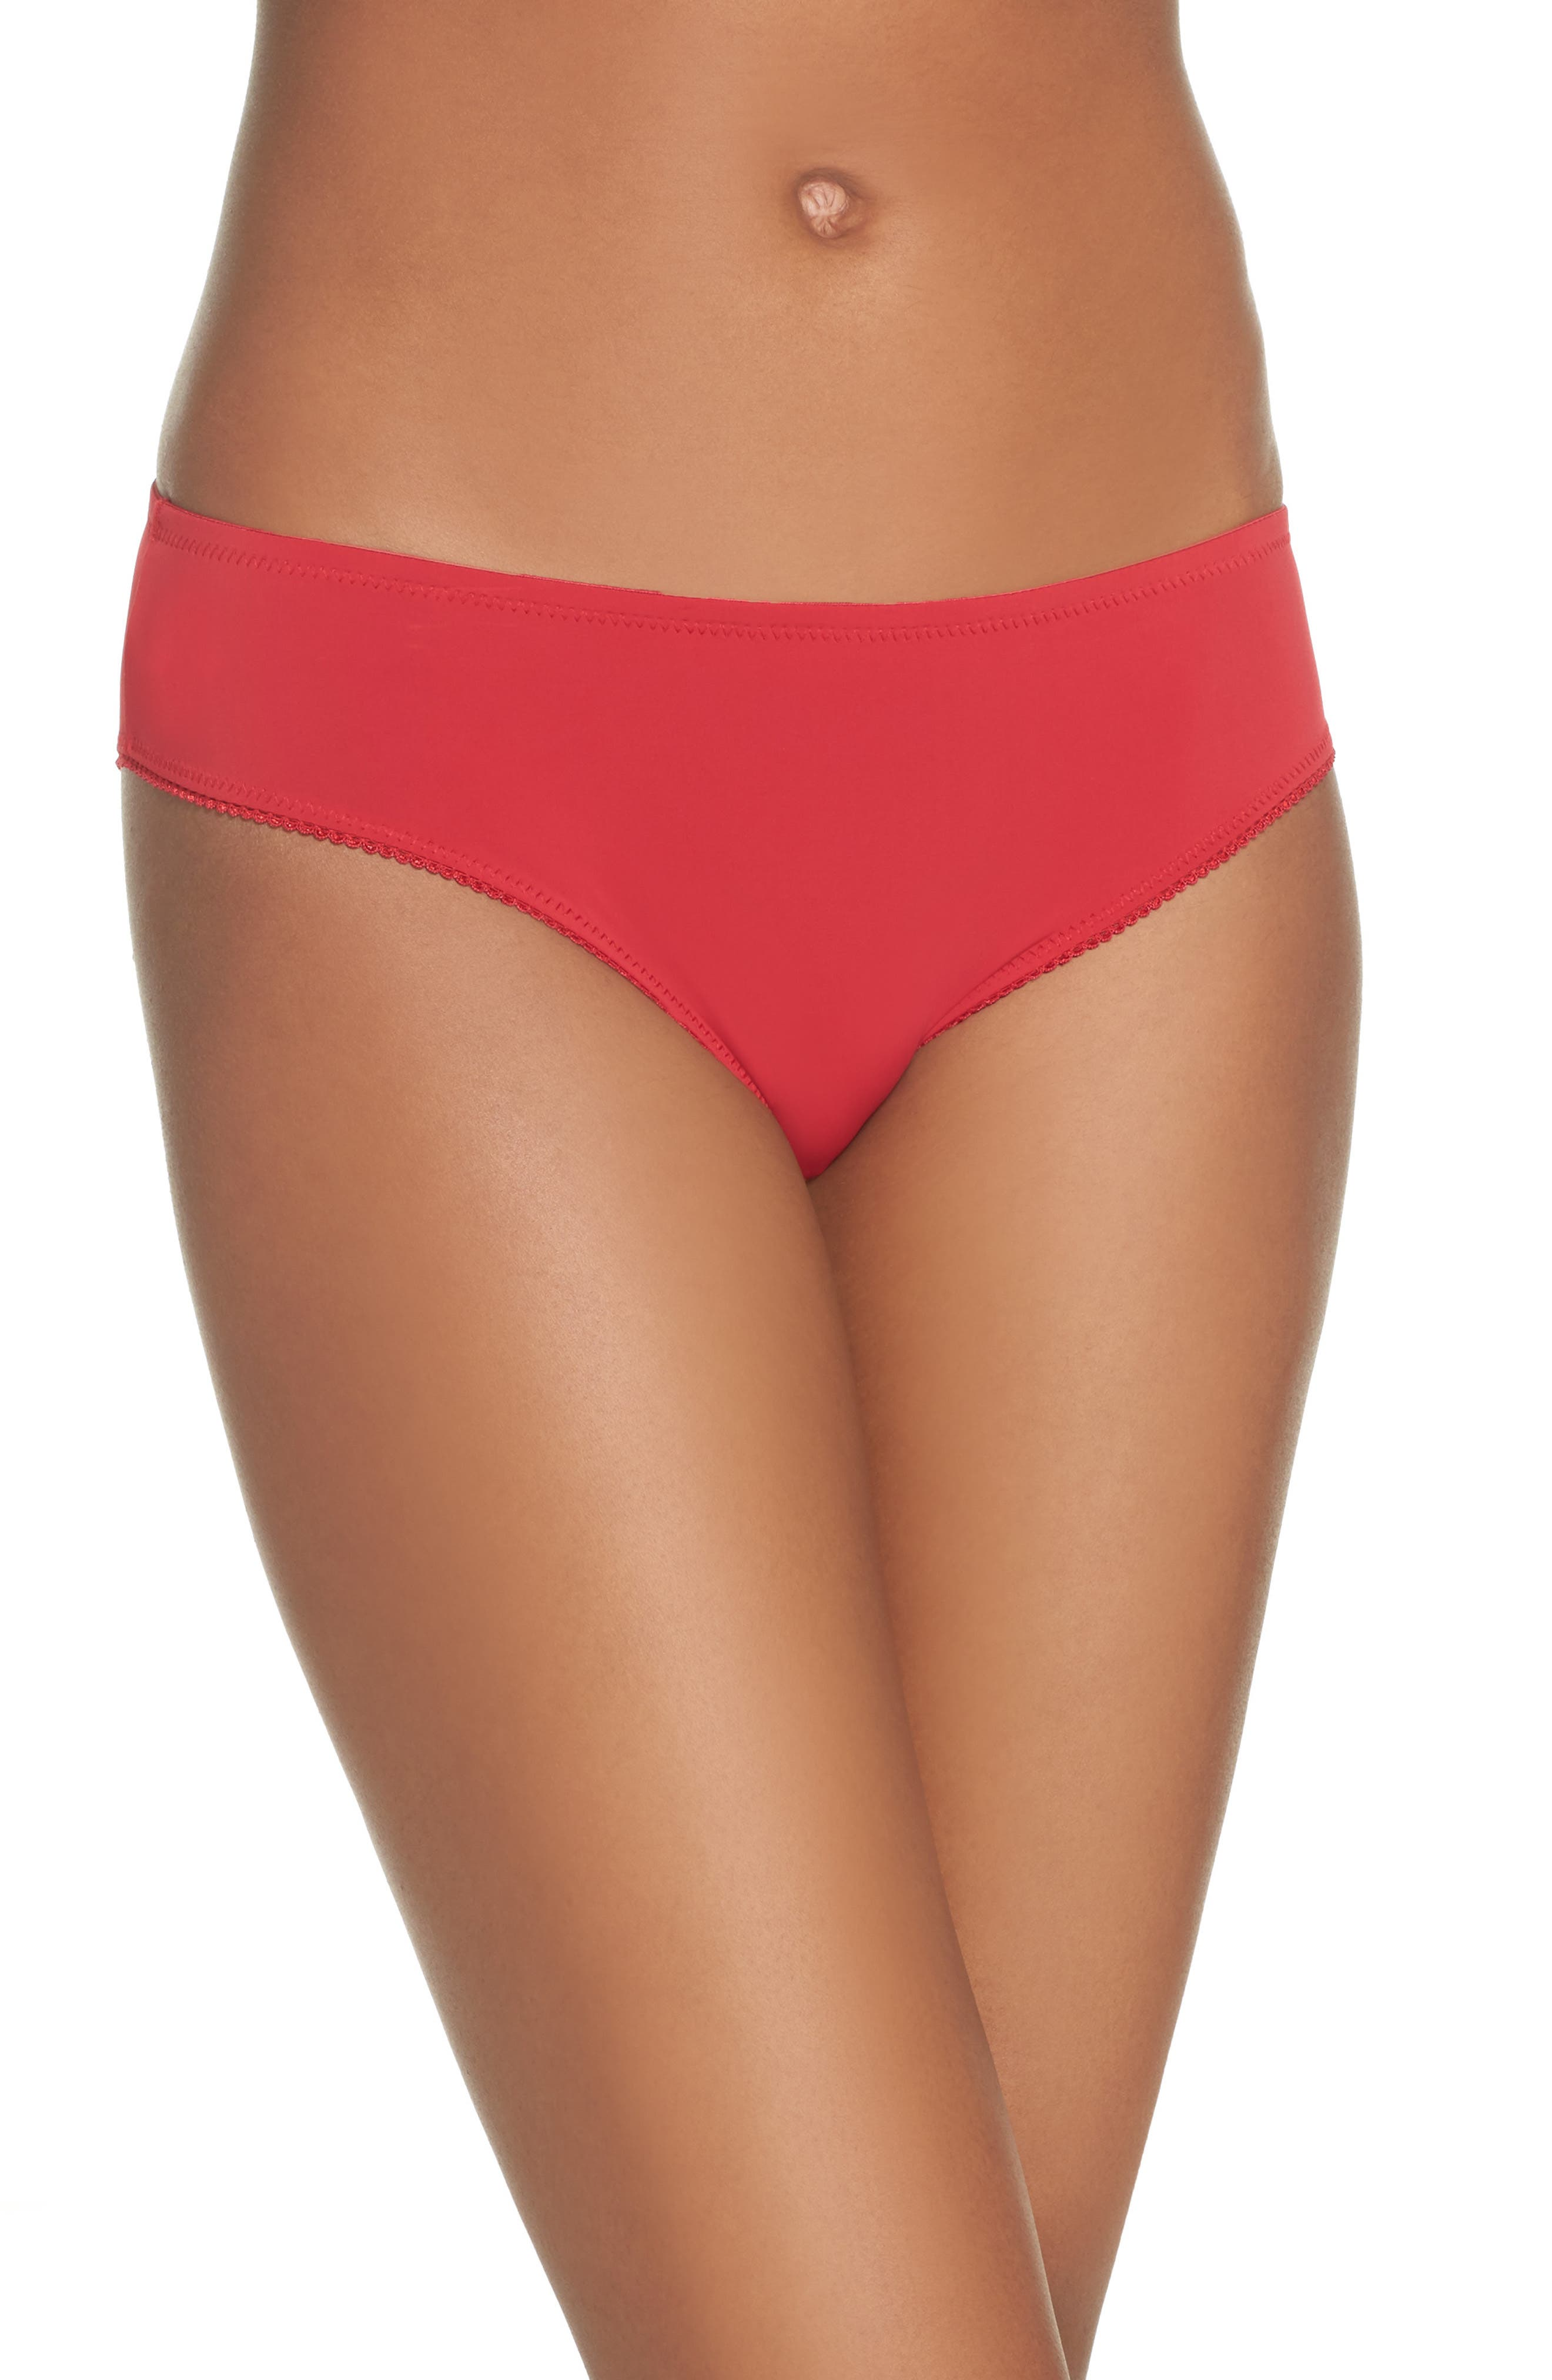 Le Petit Secret Naked Cutout Panties,                             Main thumbnail 1, color,